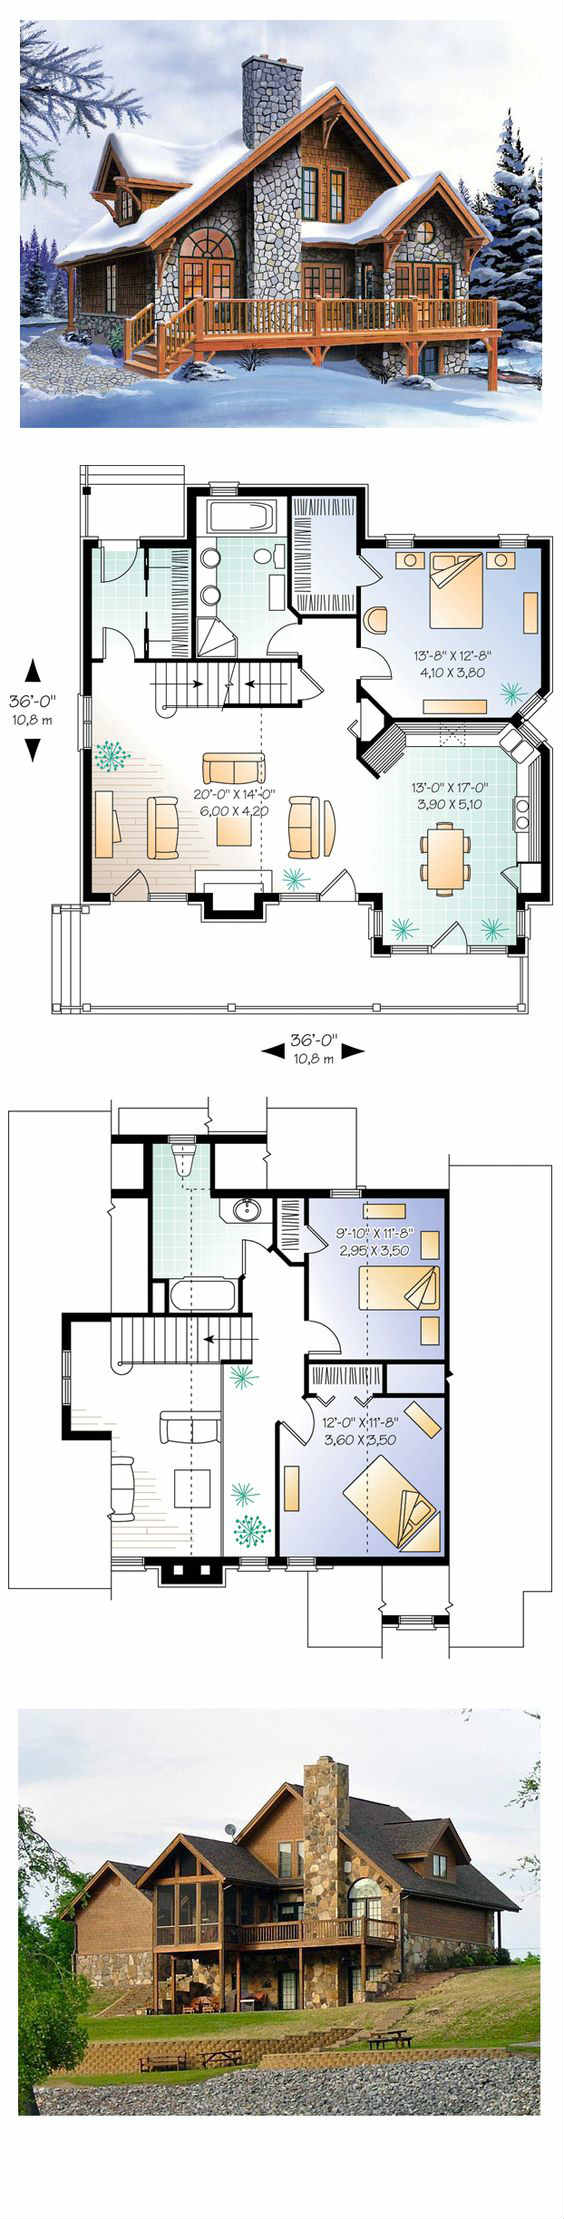 Functional house plans numberedtype Functional house plans